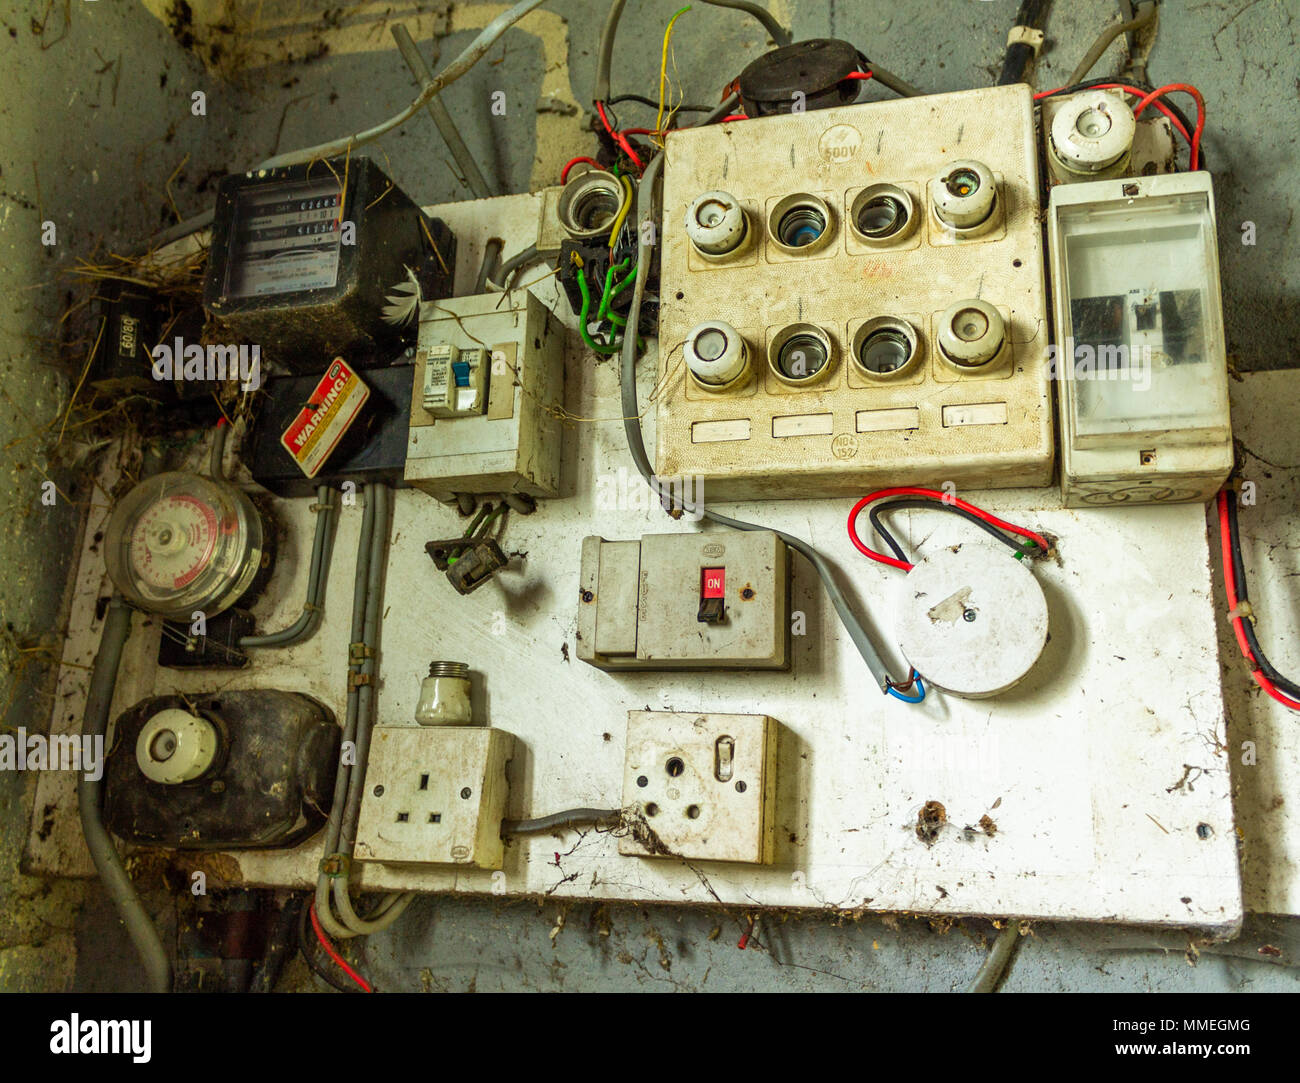 hight resolution of old electrical distribution board with electric meter fuse box fuse board and electric switches